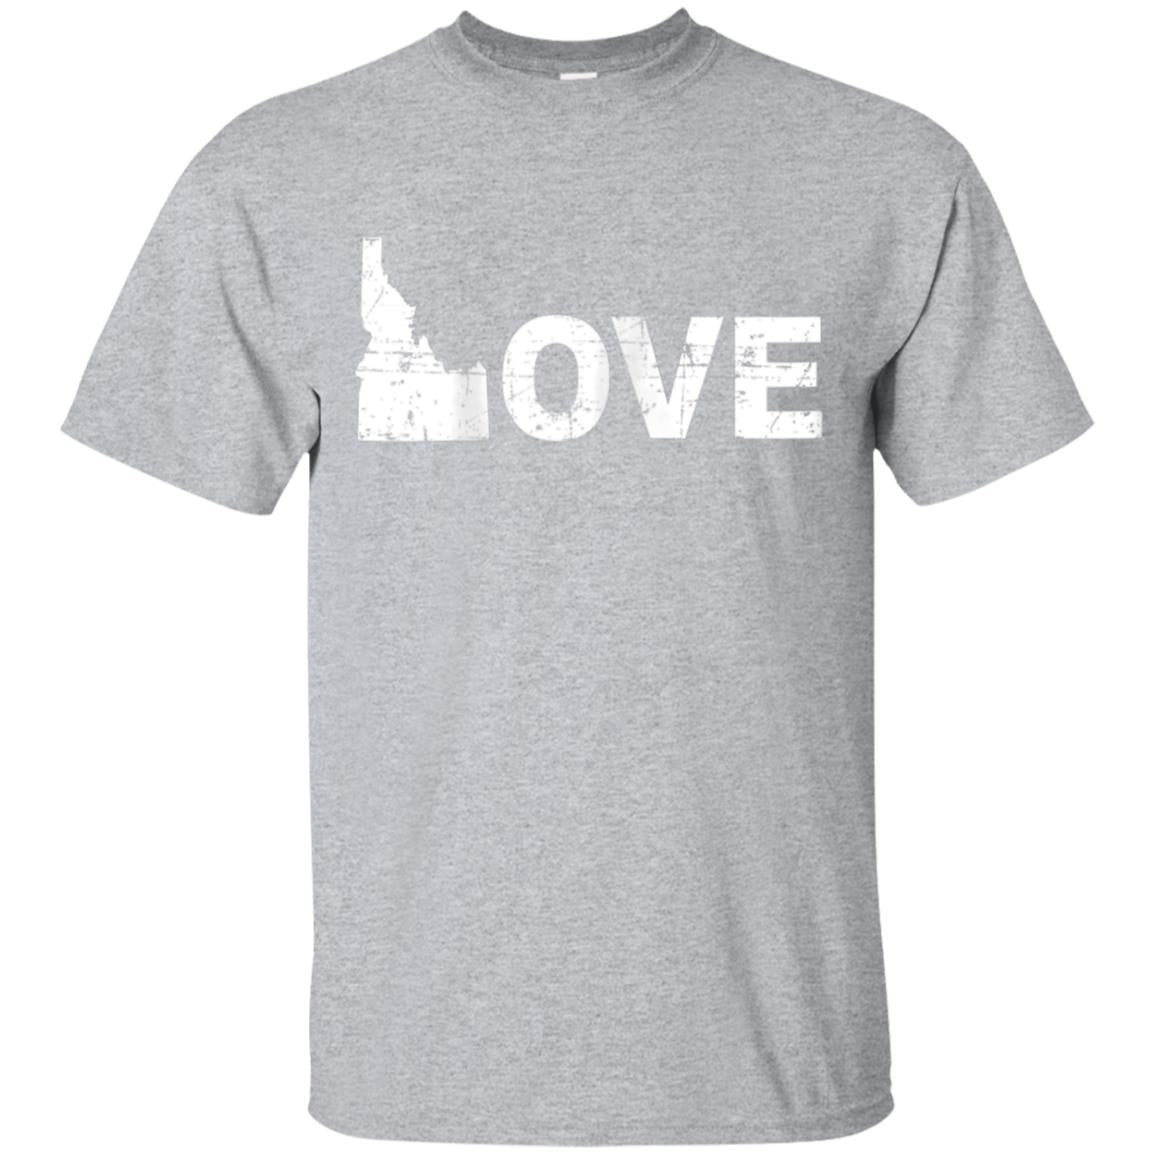 Womens I Love Idaho  Boise  Potato  T-Shirt  Gift Idea 99promocode